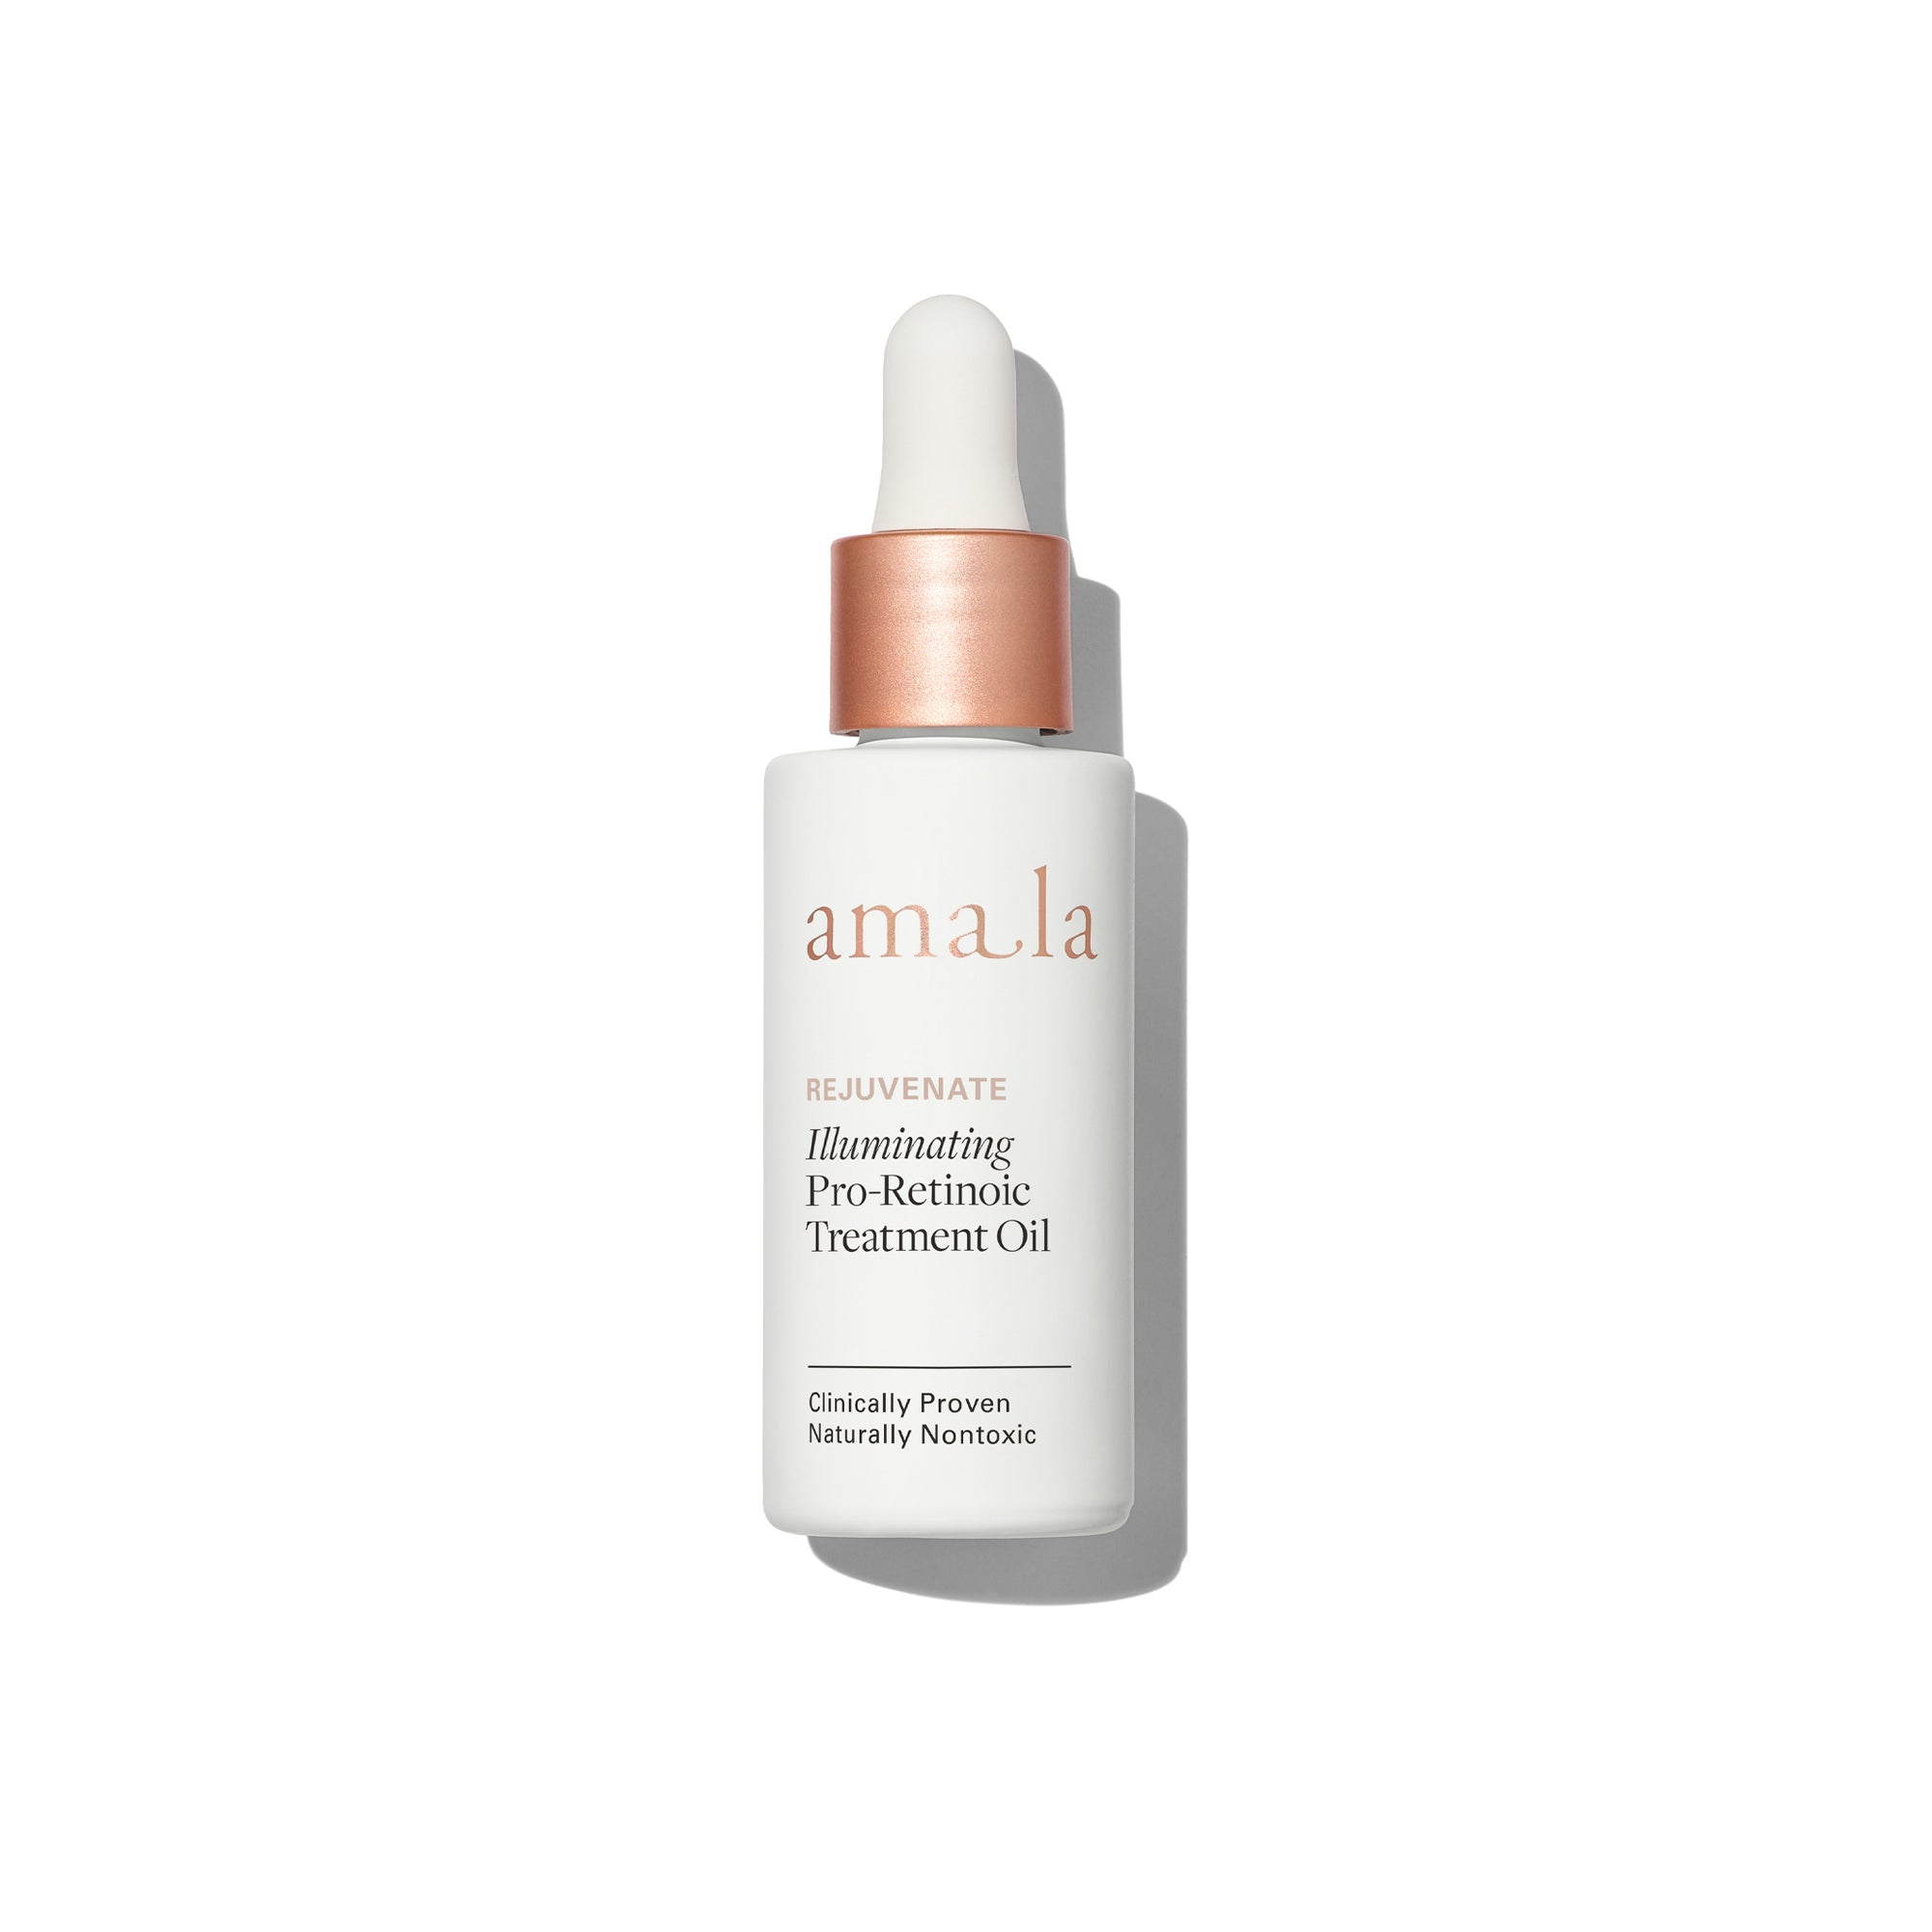 Illuminating Pro Retinoic Treatment Oil by Amala